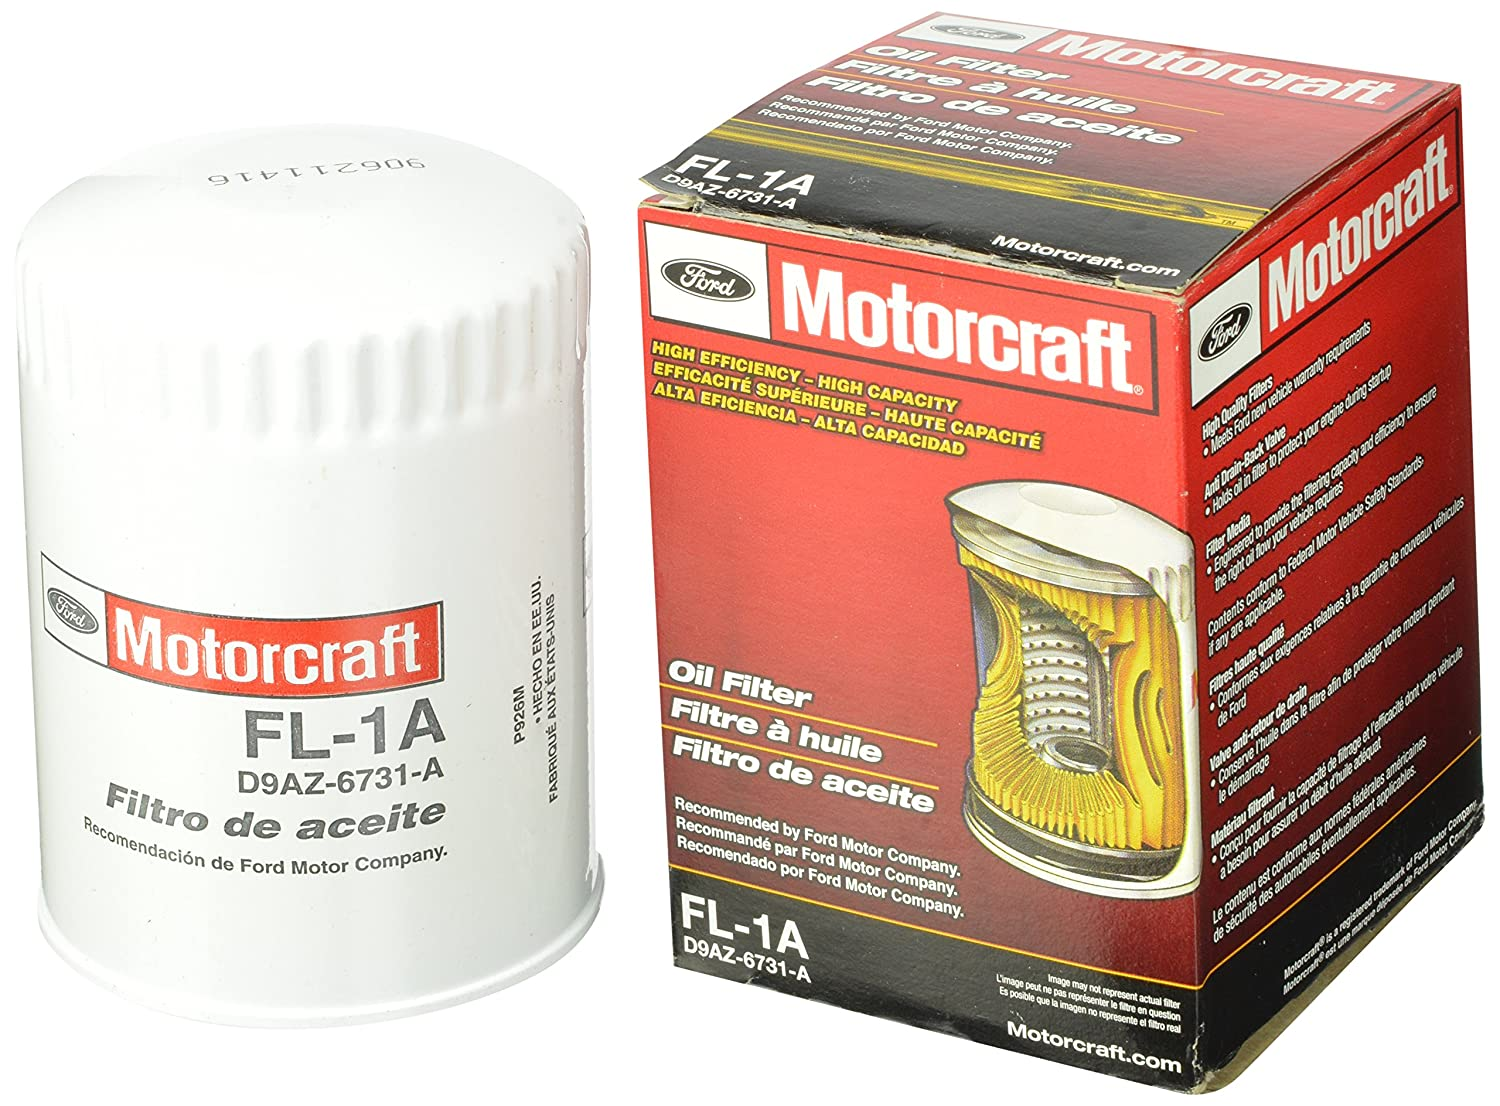 Motorcraft FL-1-A Oil Filter